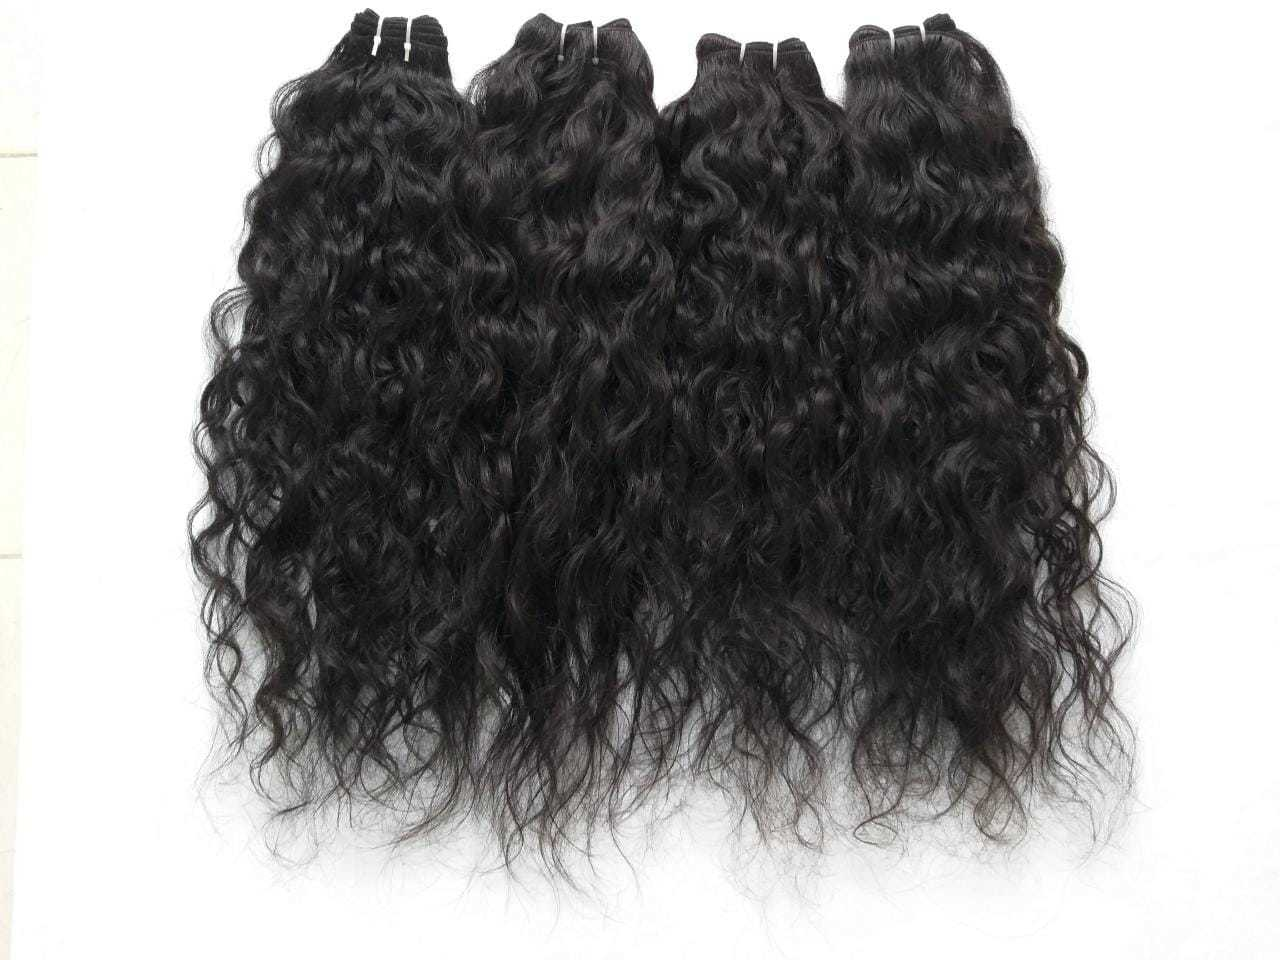 Cuticle Aligned Deep Curly Peruvian Human Hair , Remy Curly Hair